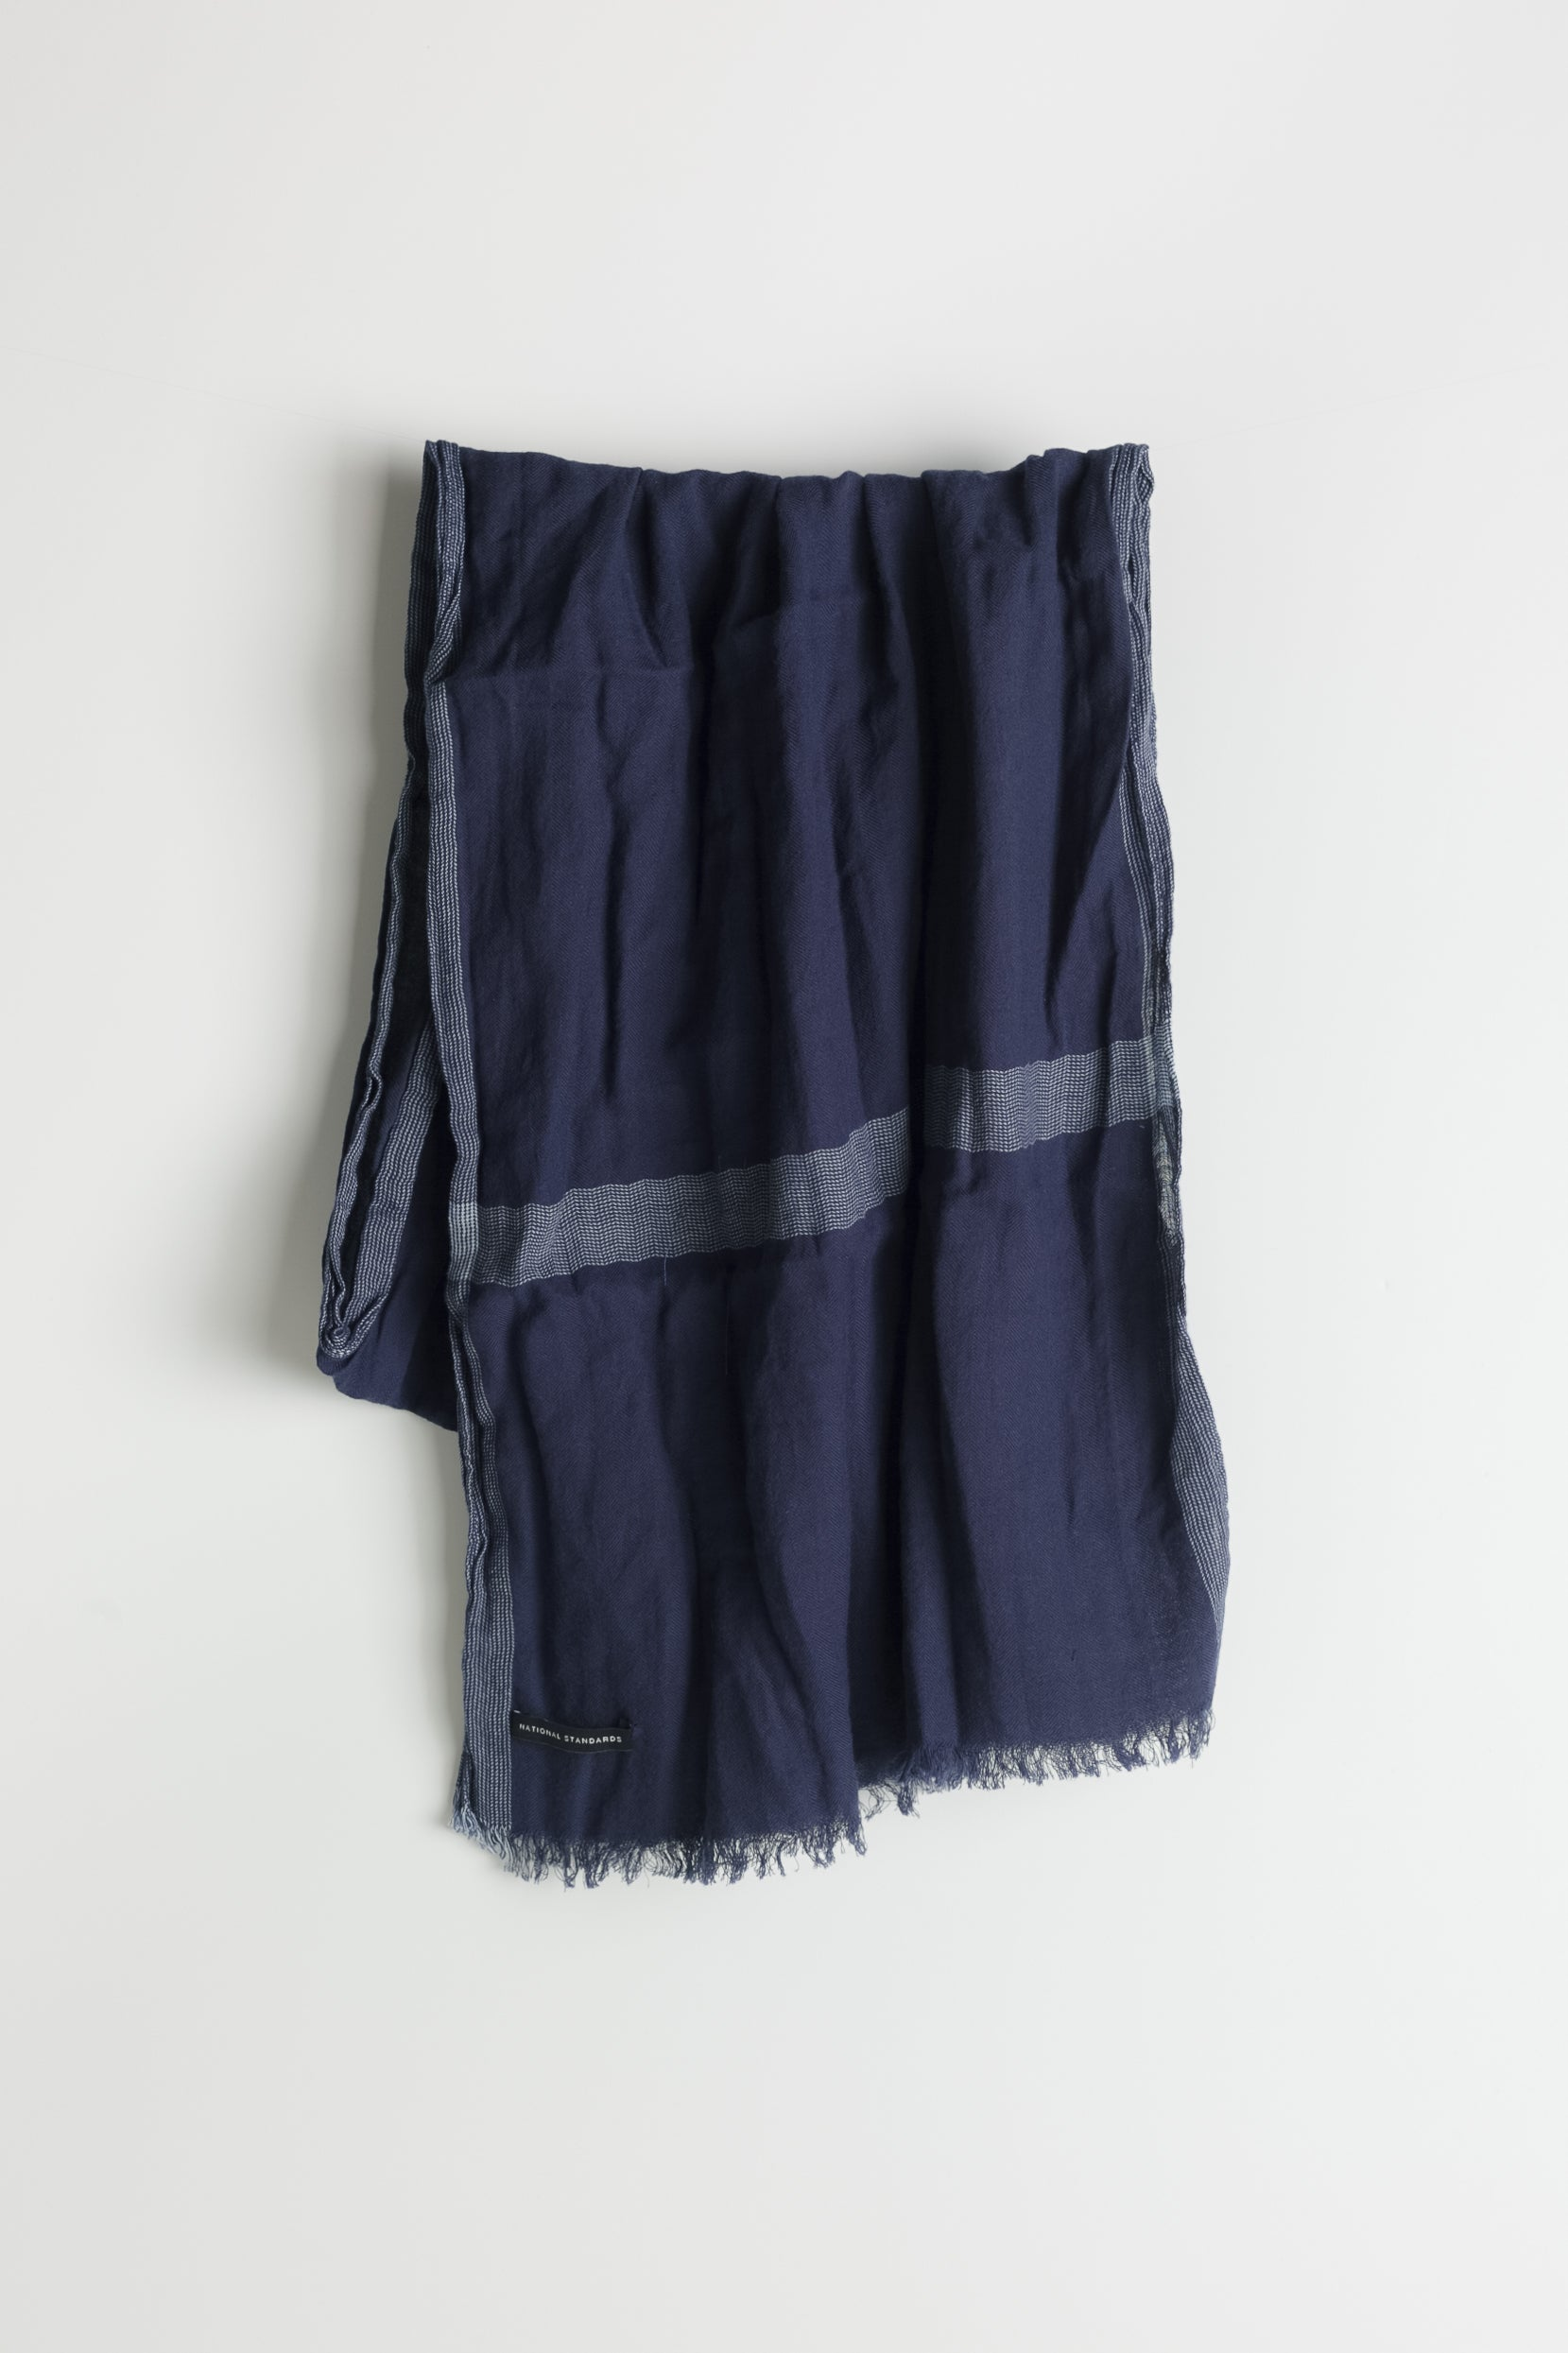 Border Stripe Scarf in Navy 01